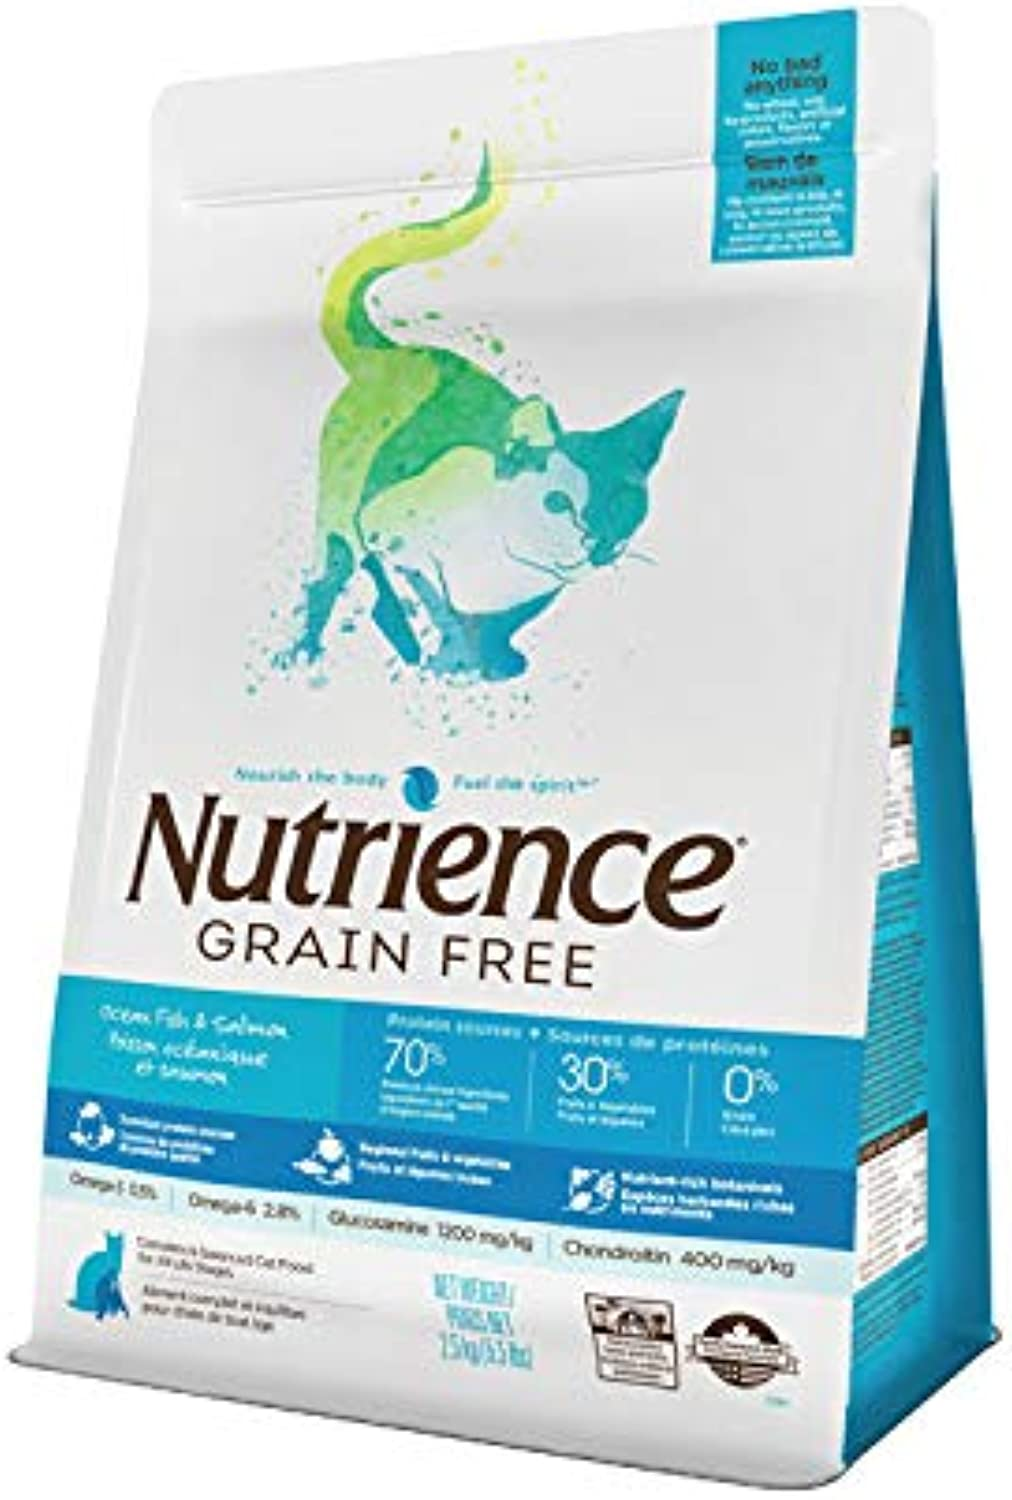 Nutrience Grain Free Ocean Fish Cat Food (5.5lb)